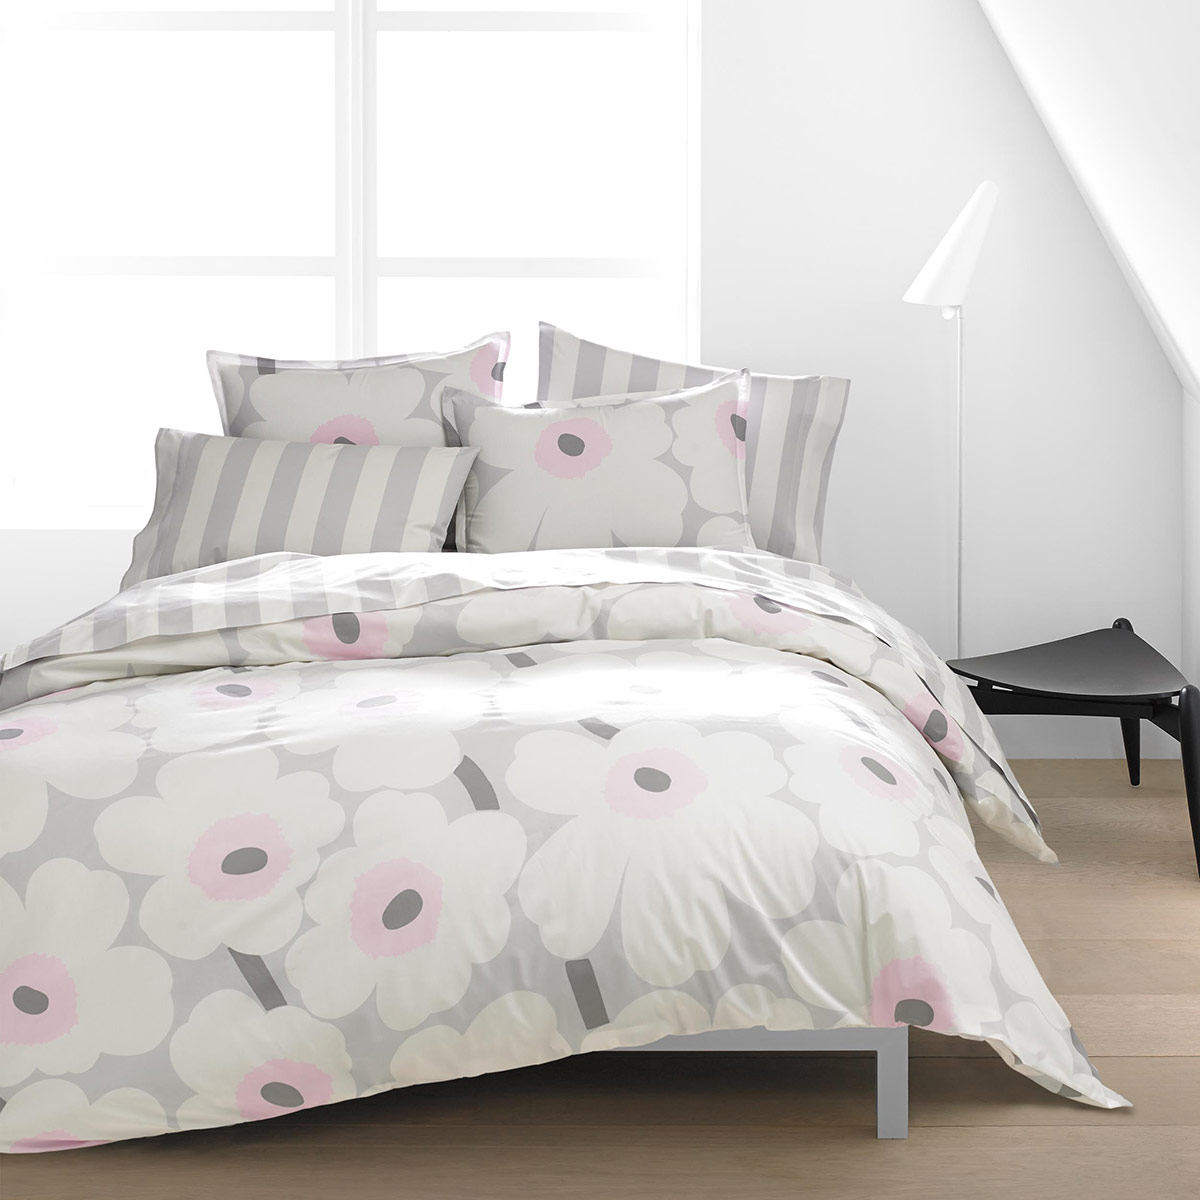 Marimekko Unikko Grey Pink Duvet Cover Set King